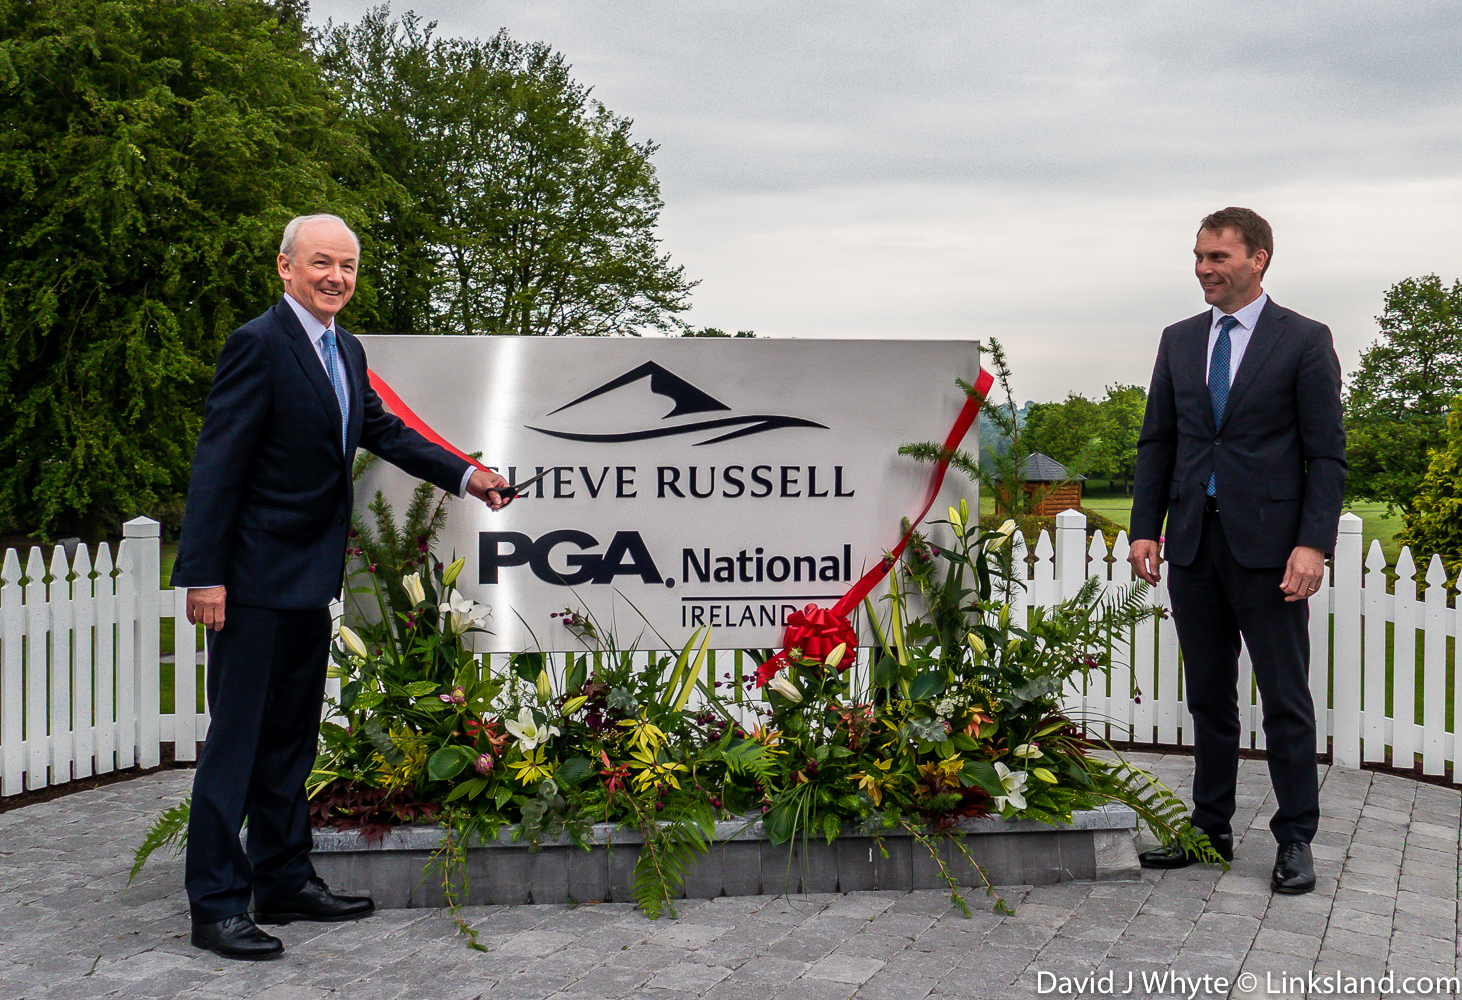 Tony unveils the new plaque at PGA National Slieve Russell